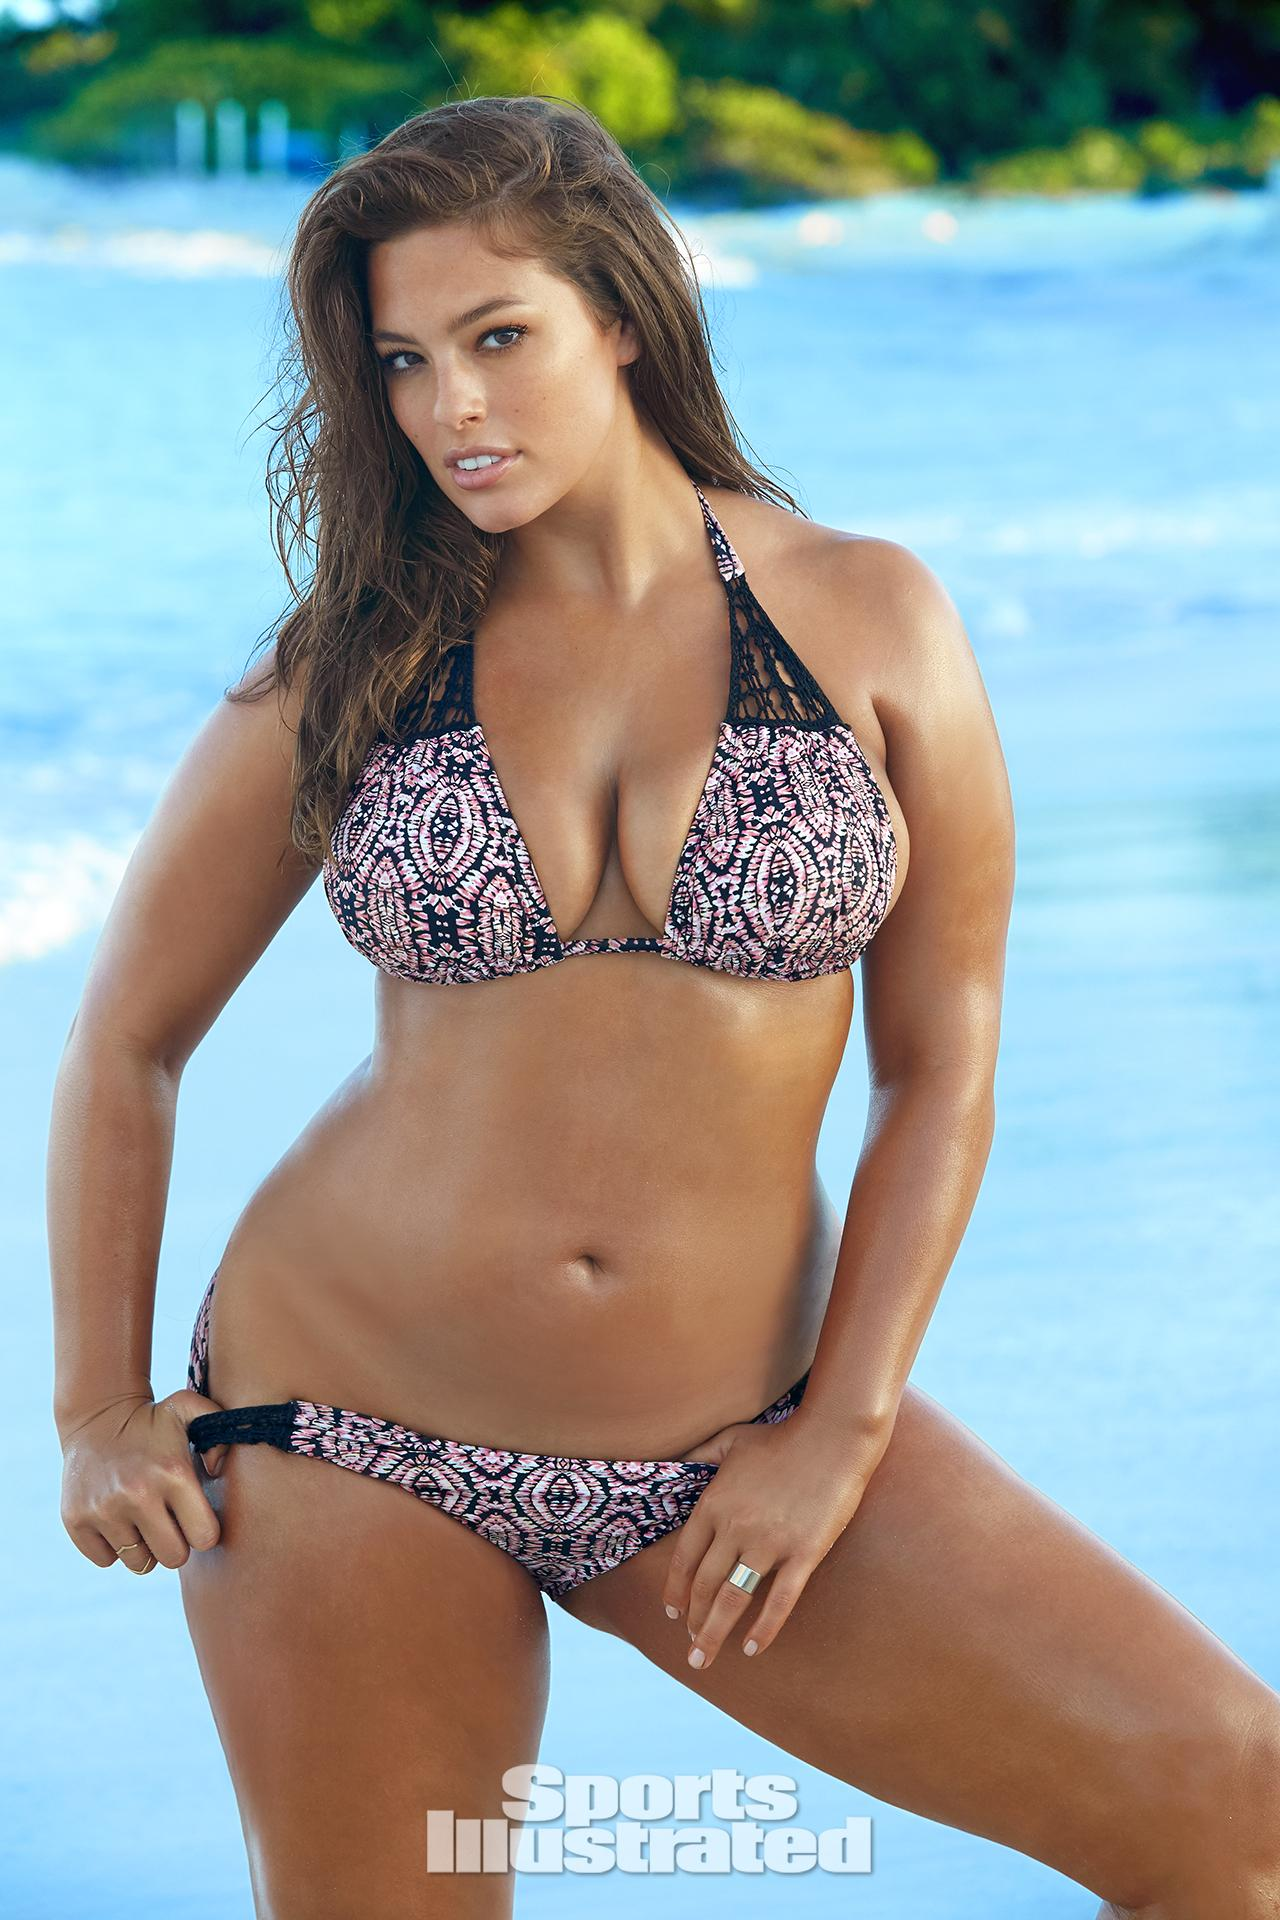 ashley-graham-2016-photo-sports-illustra